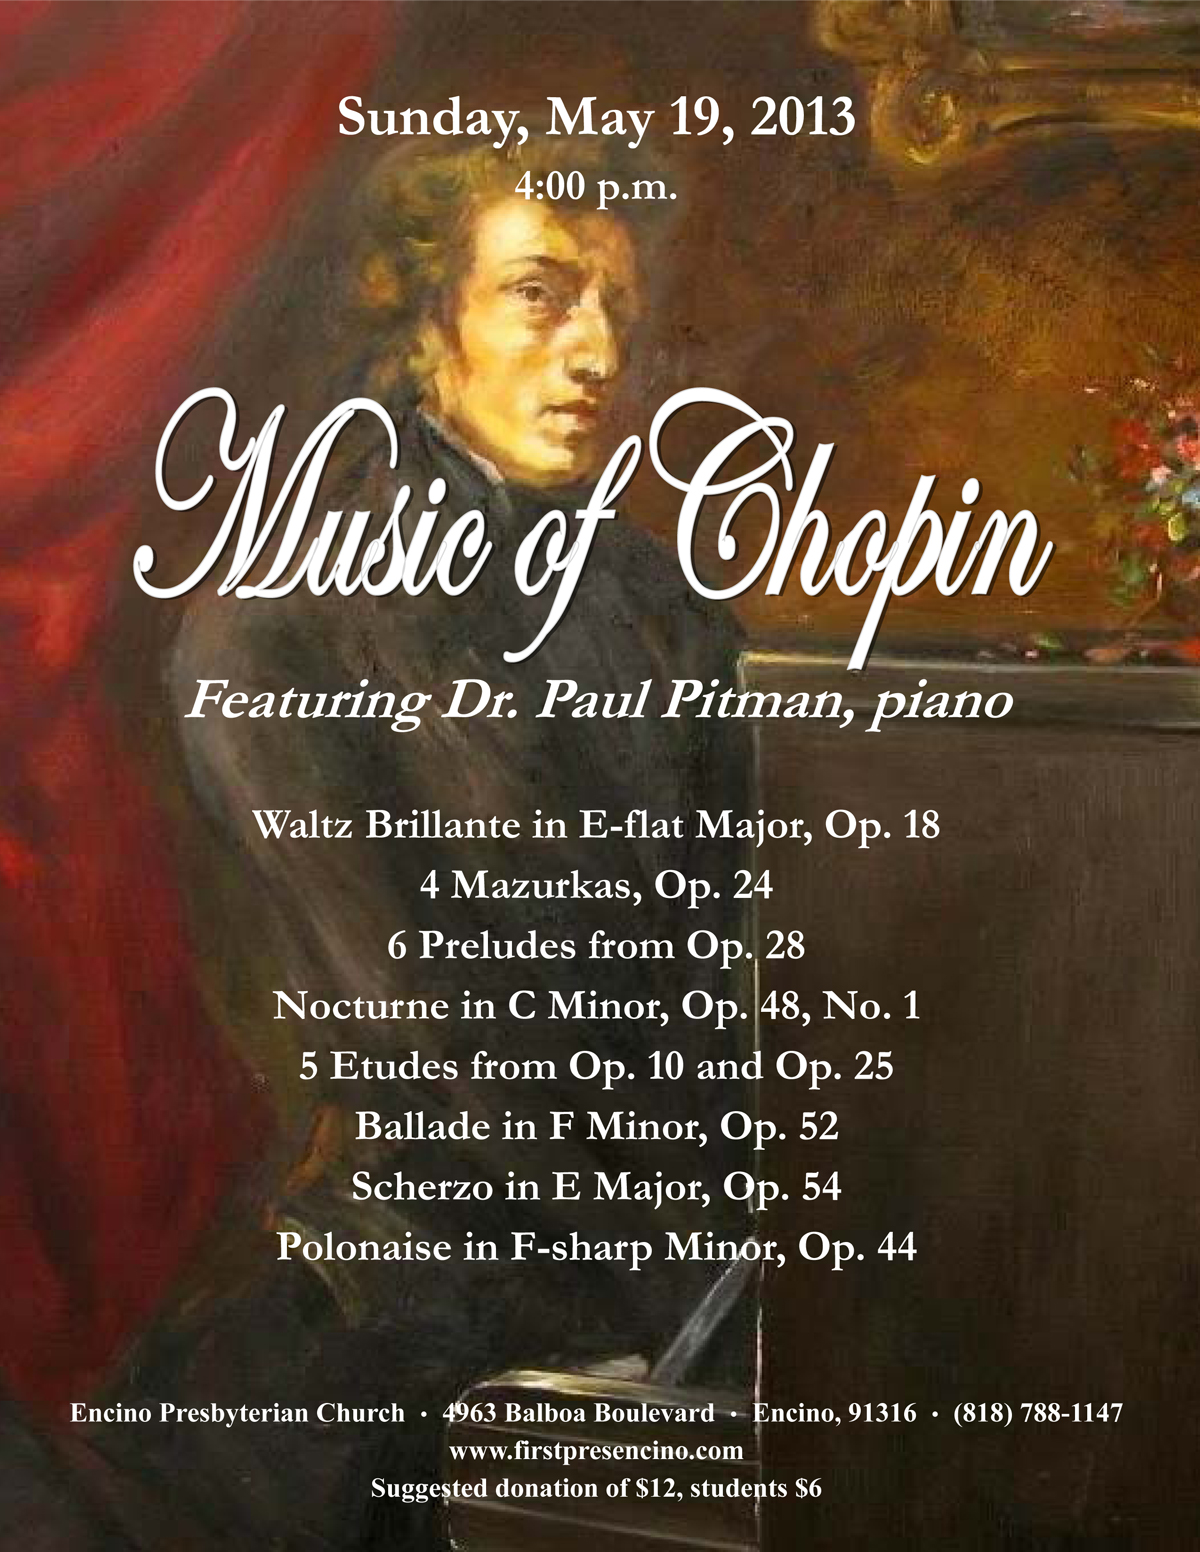 Music of Chopin - Featuring Dr. Paul Pitman, piano - Sunday ,May 19, 2013 at Encino Prebysterian Church